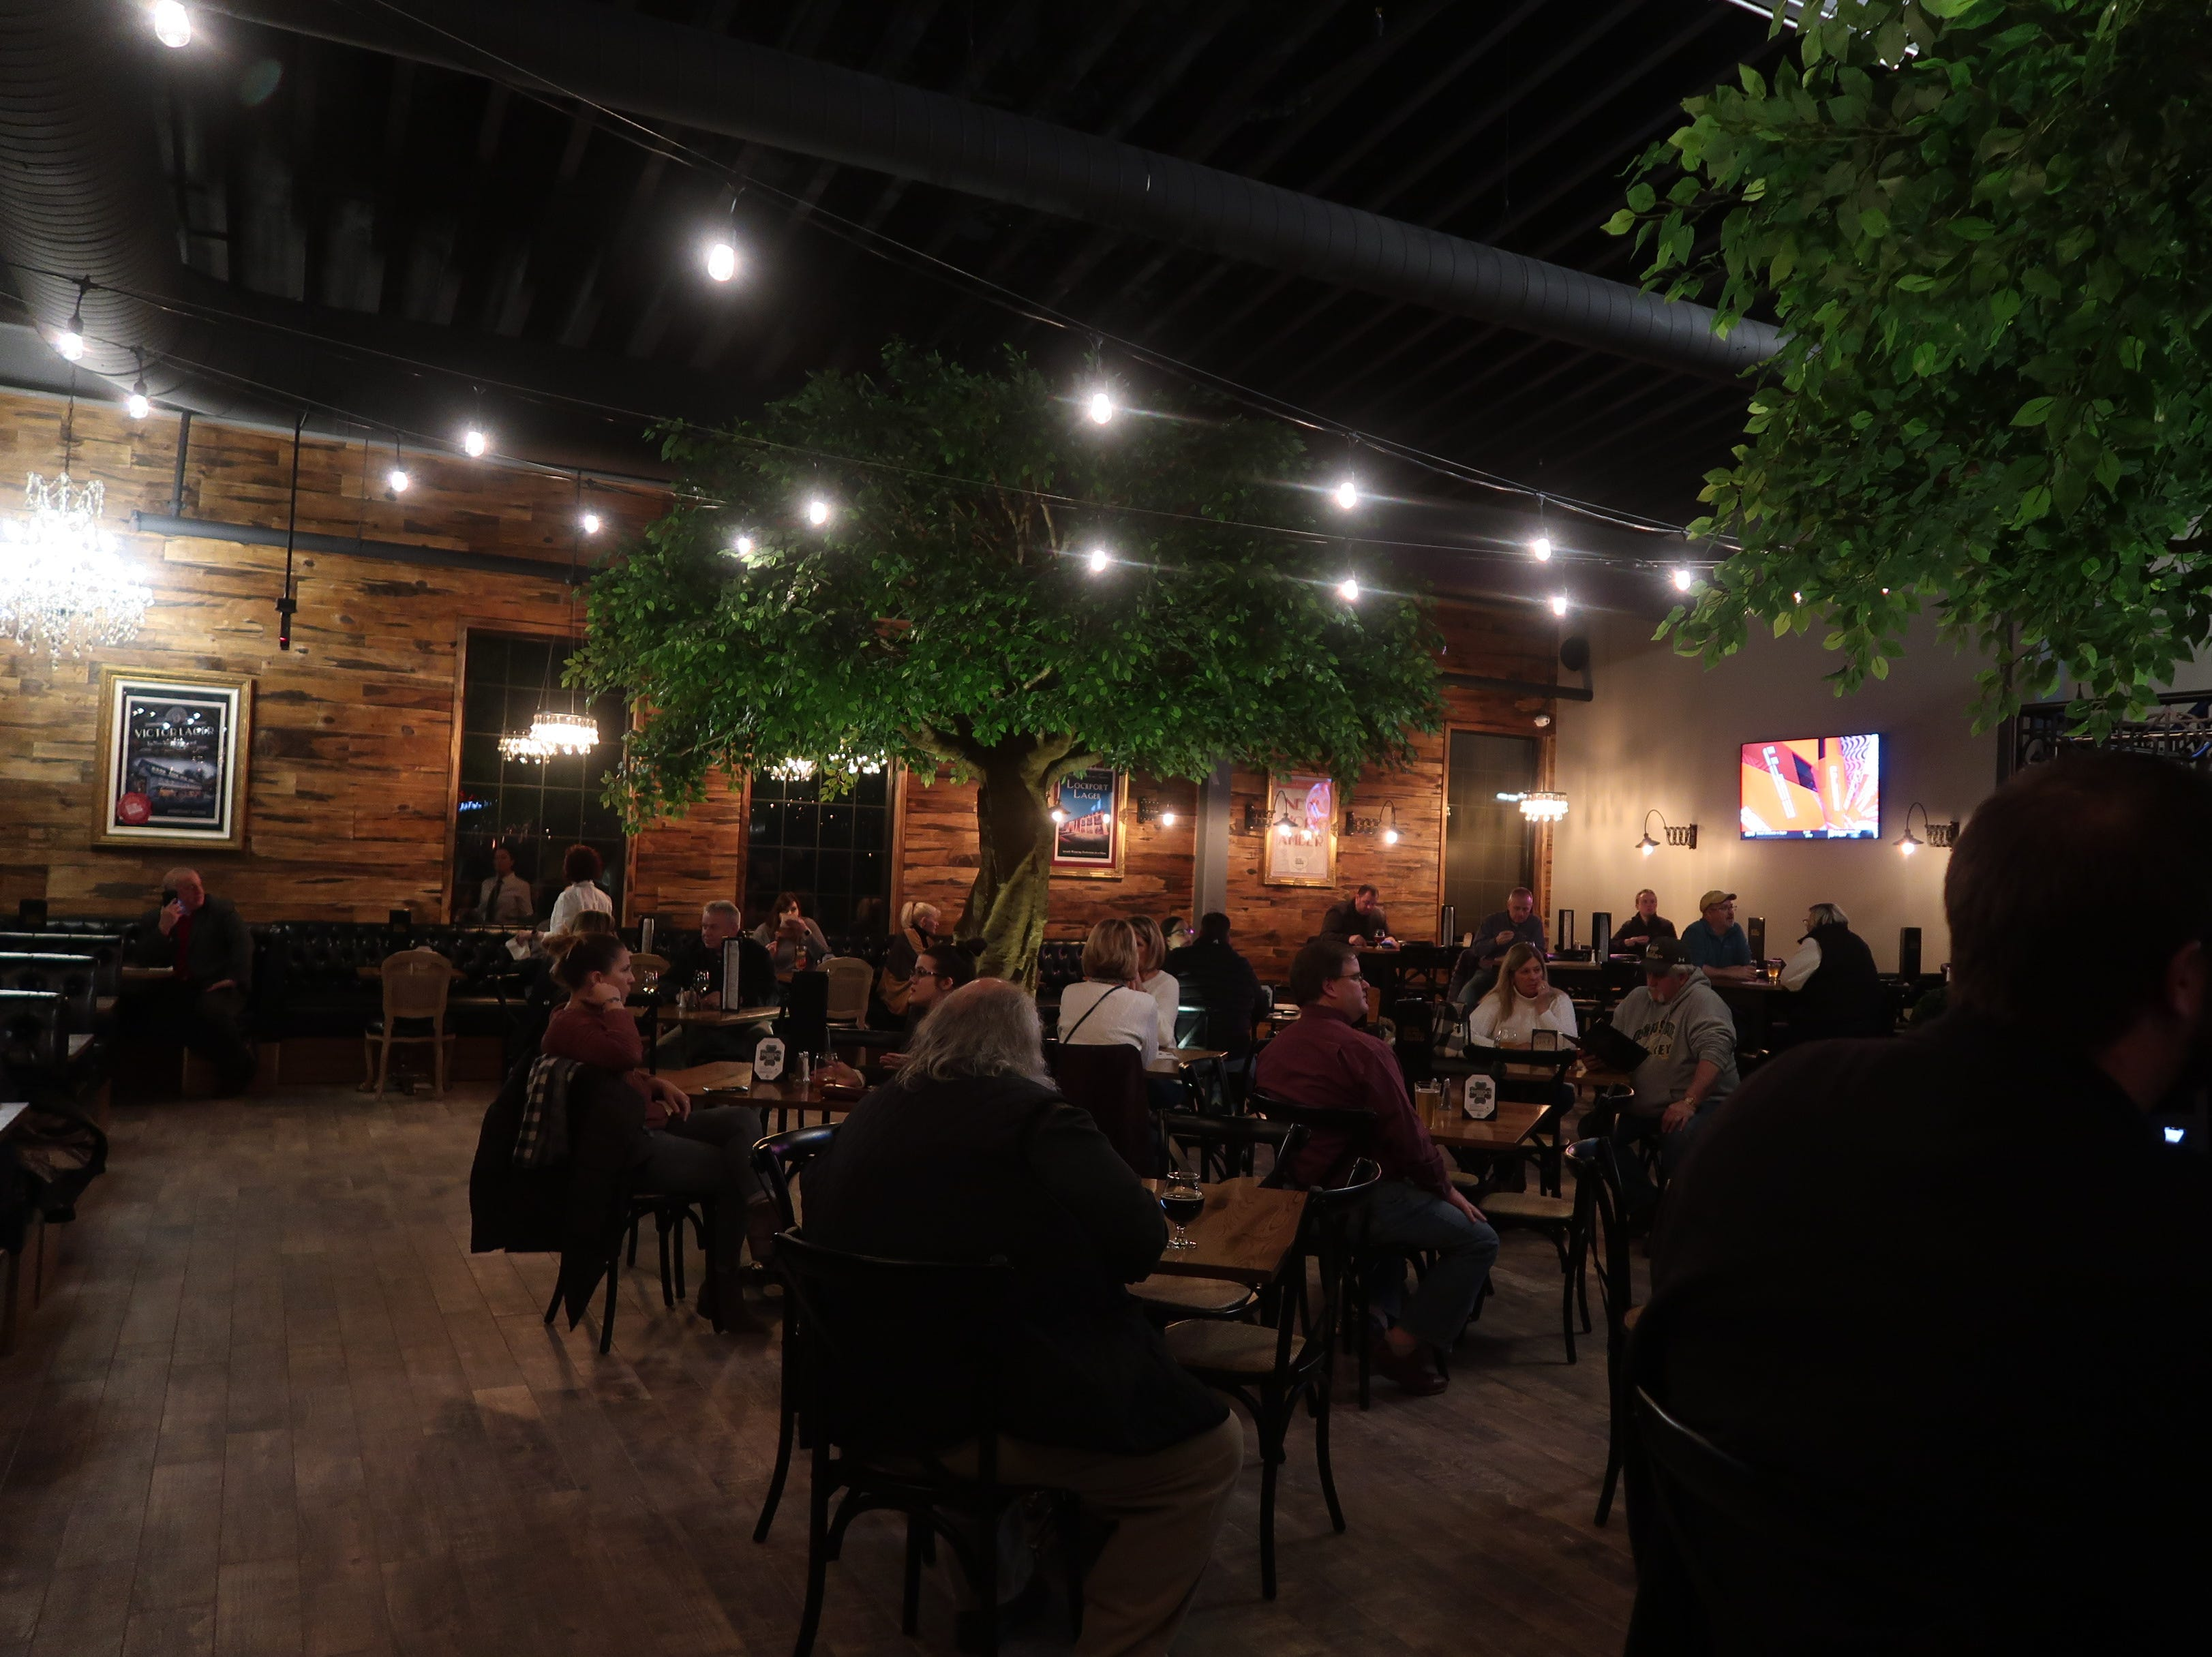 Every detail has been planned out in the New York Beer Project space in Victor.